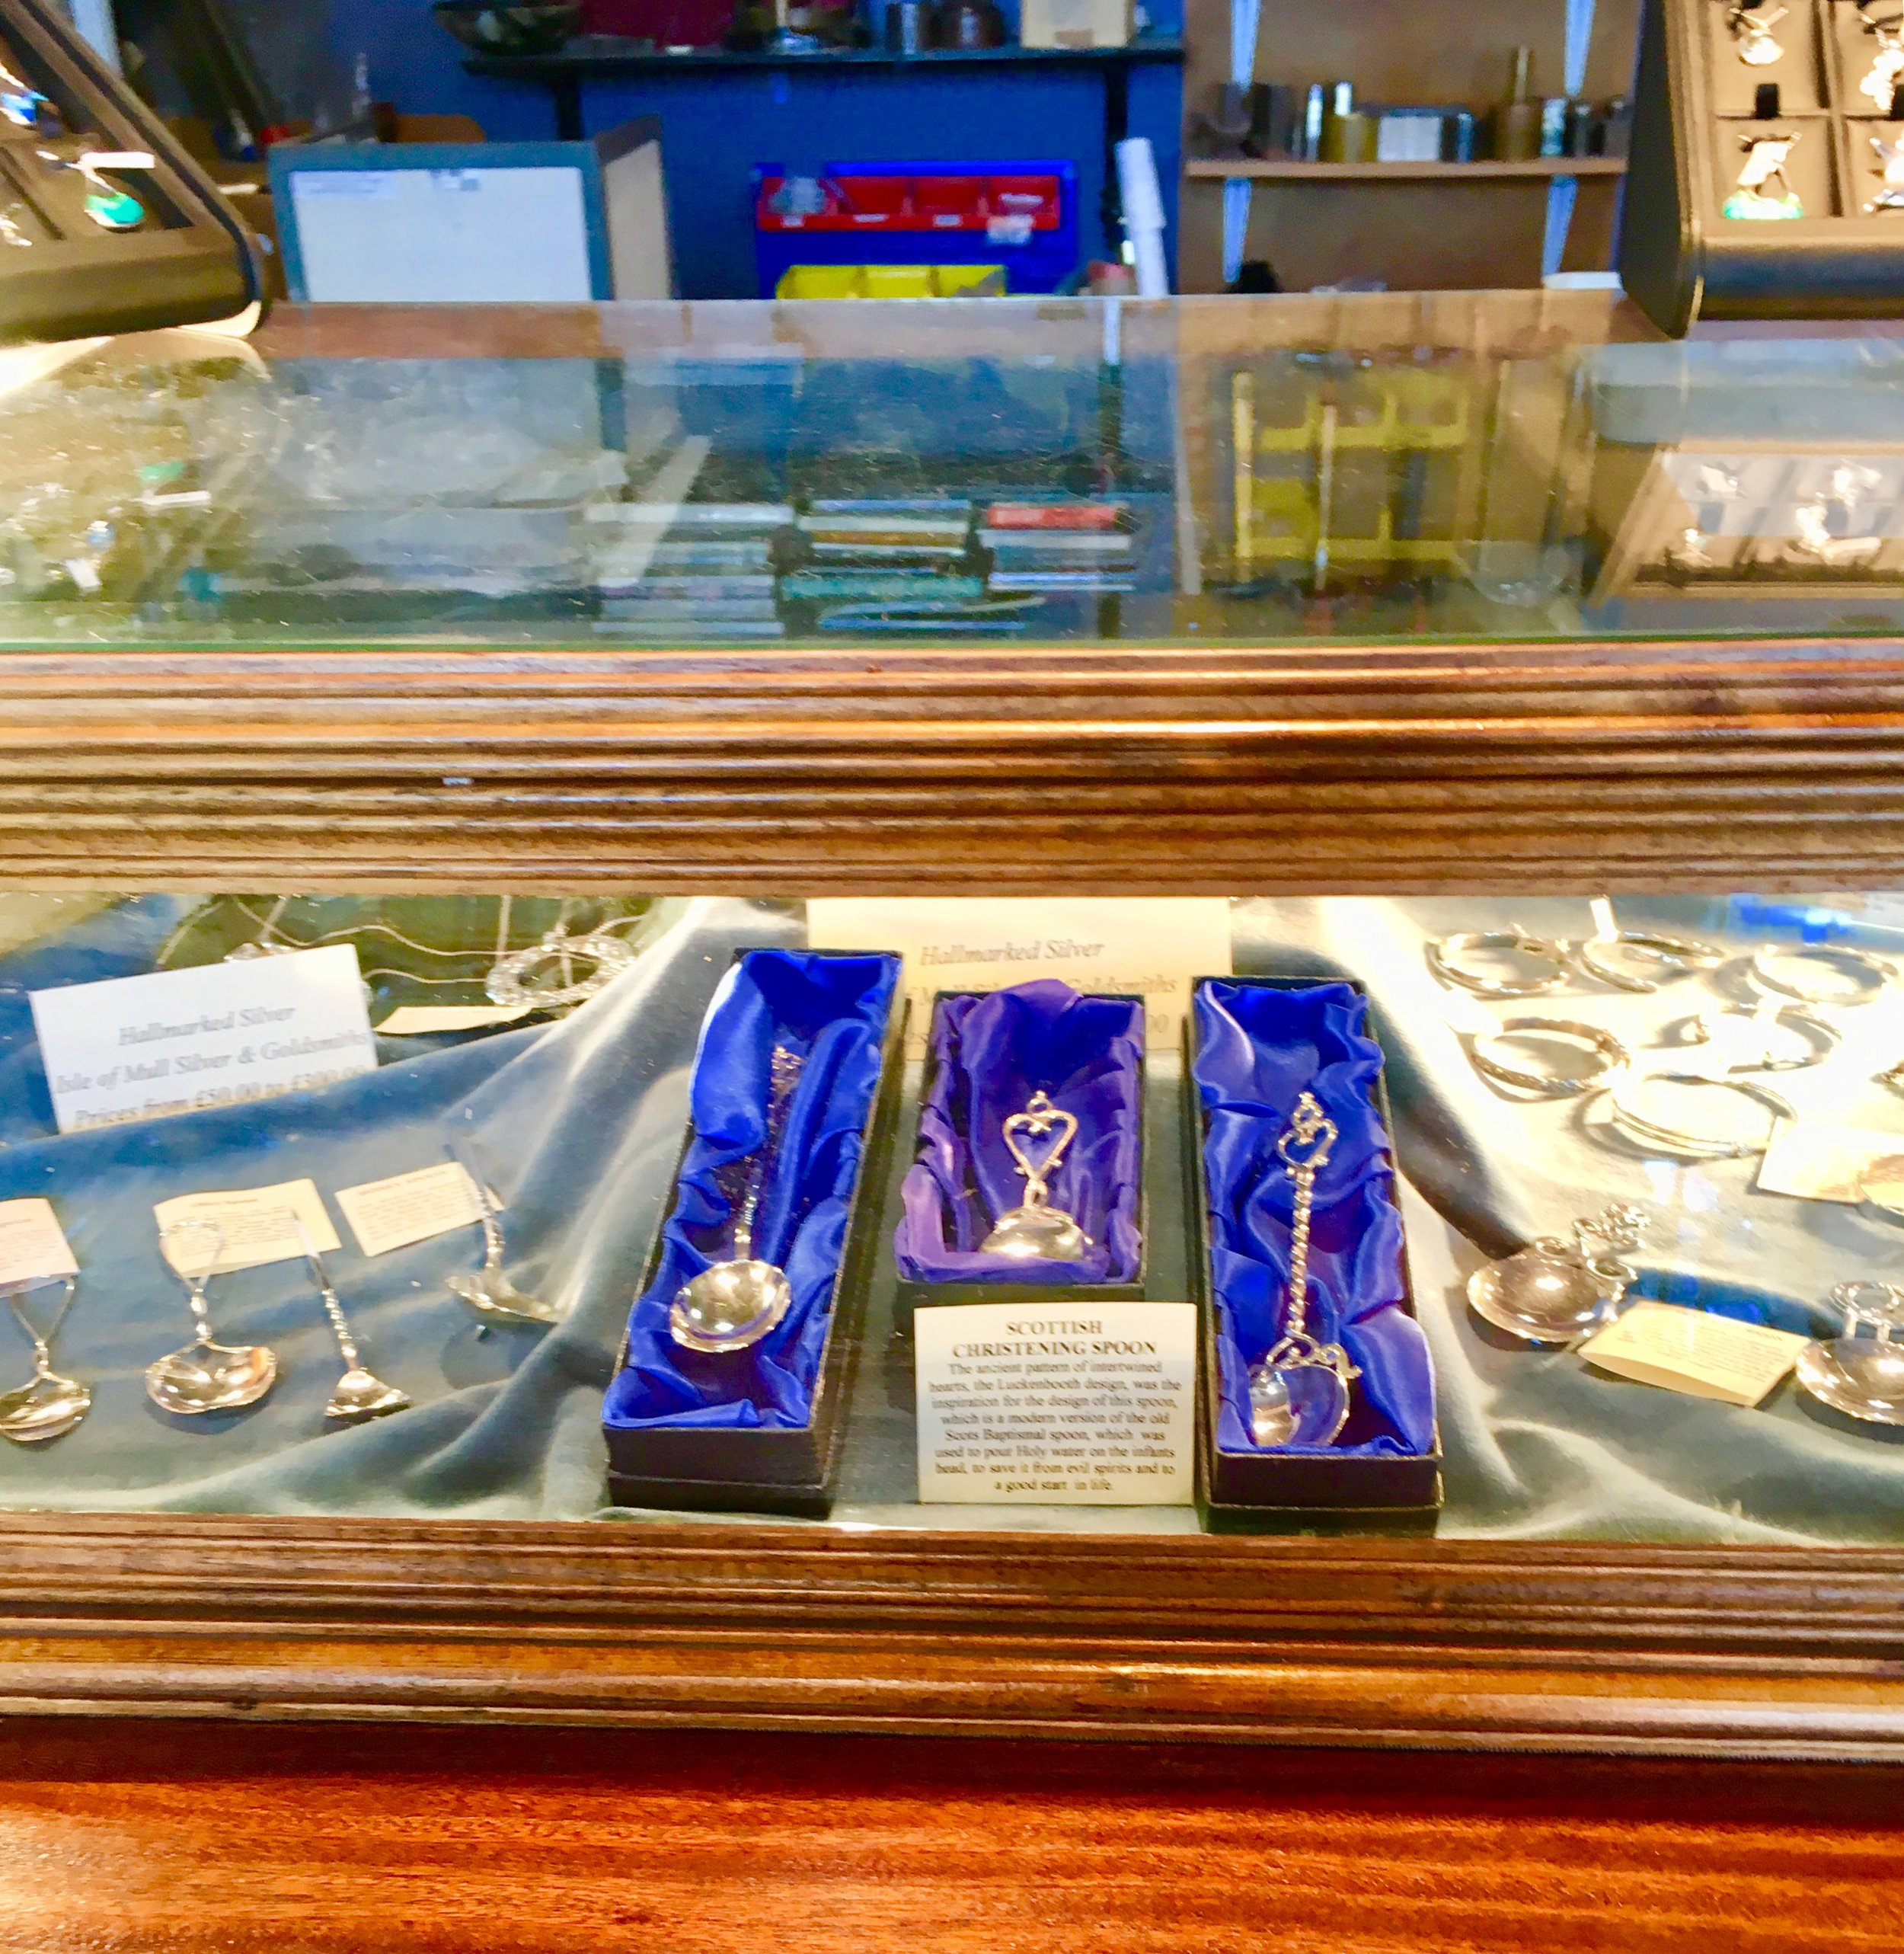 The shop also offers a wide selection of traditional silver spoons.